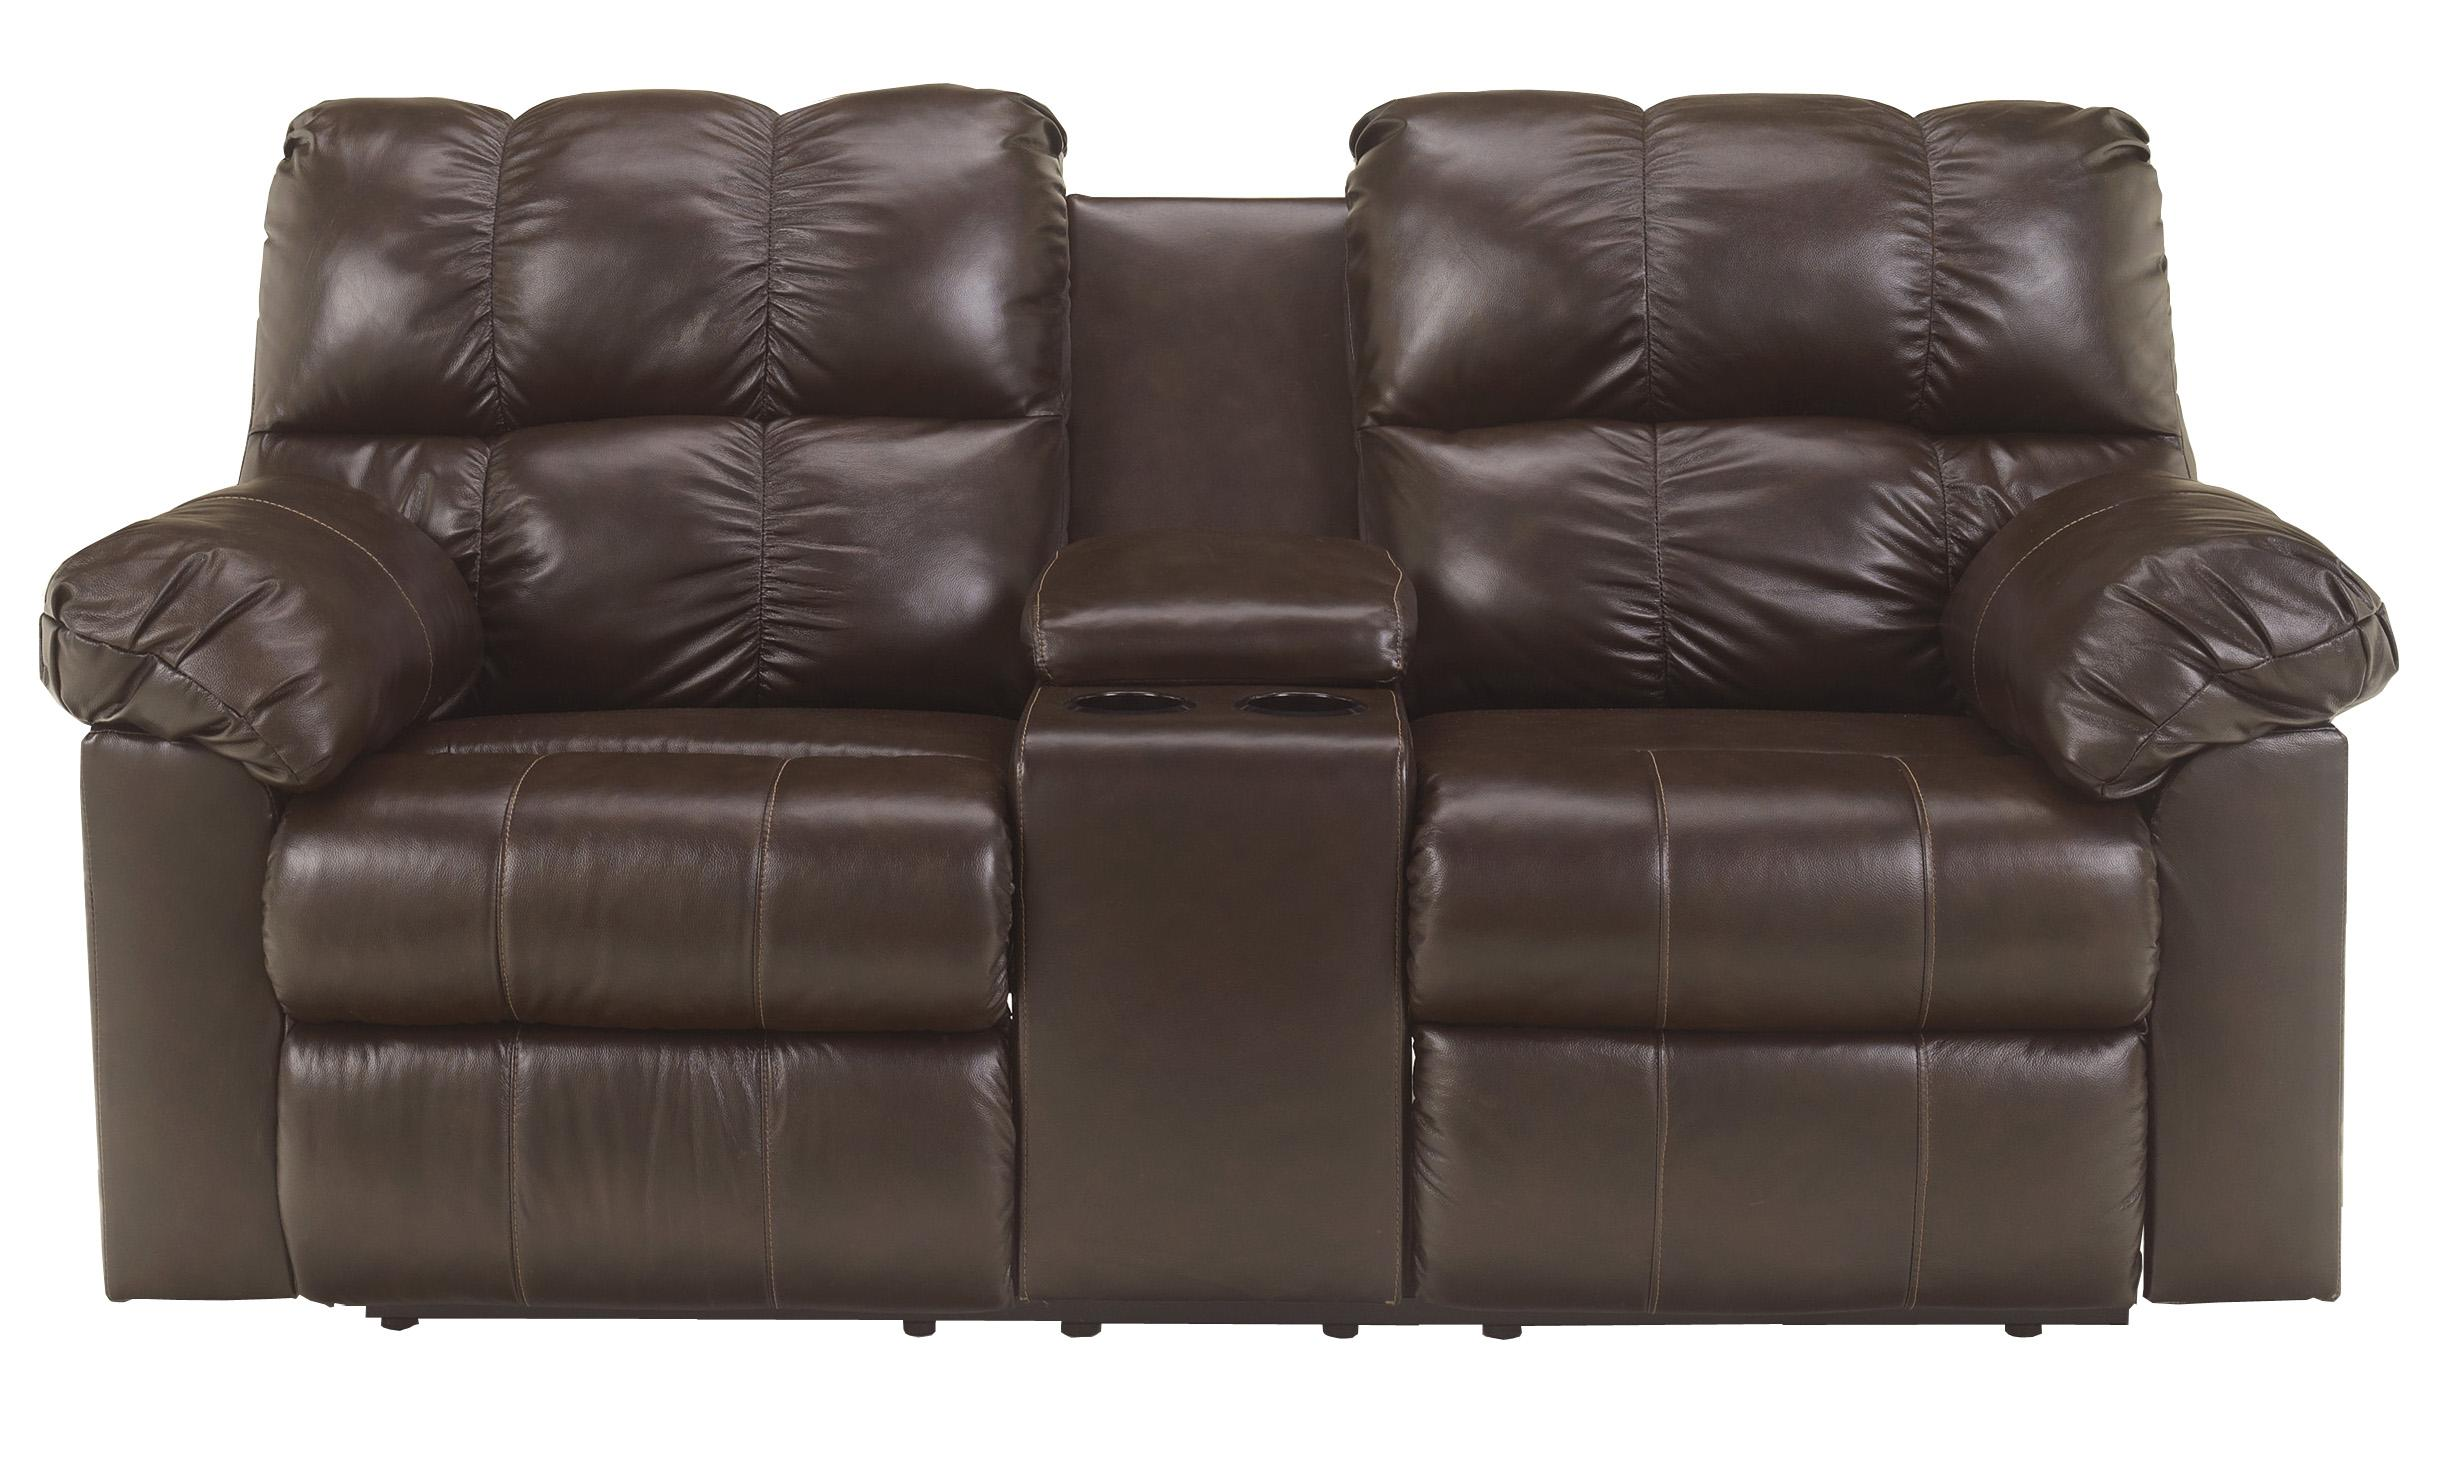 Signature Design by Ashley Kennard - Chocolate Dbl Rec Love Seat w/Console - Item Number: 2900194